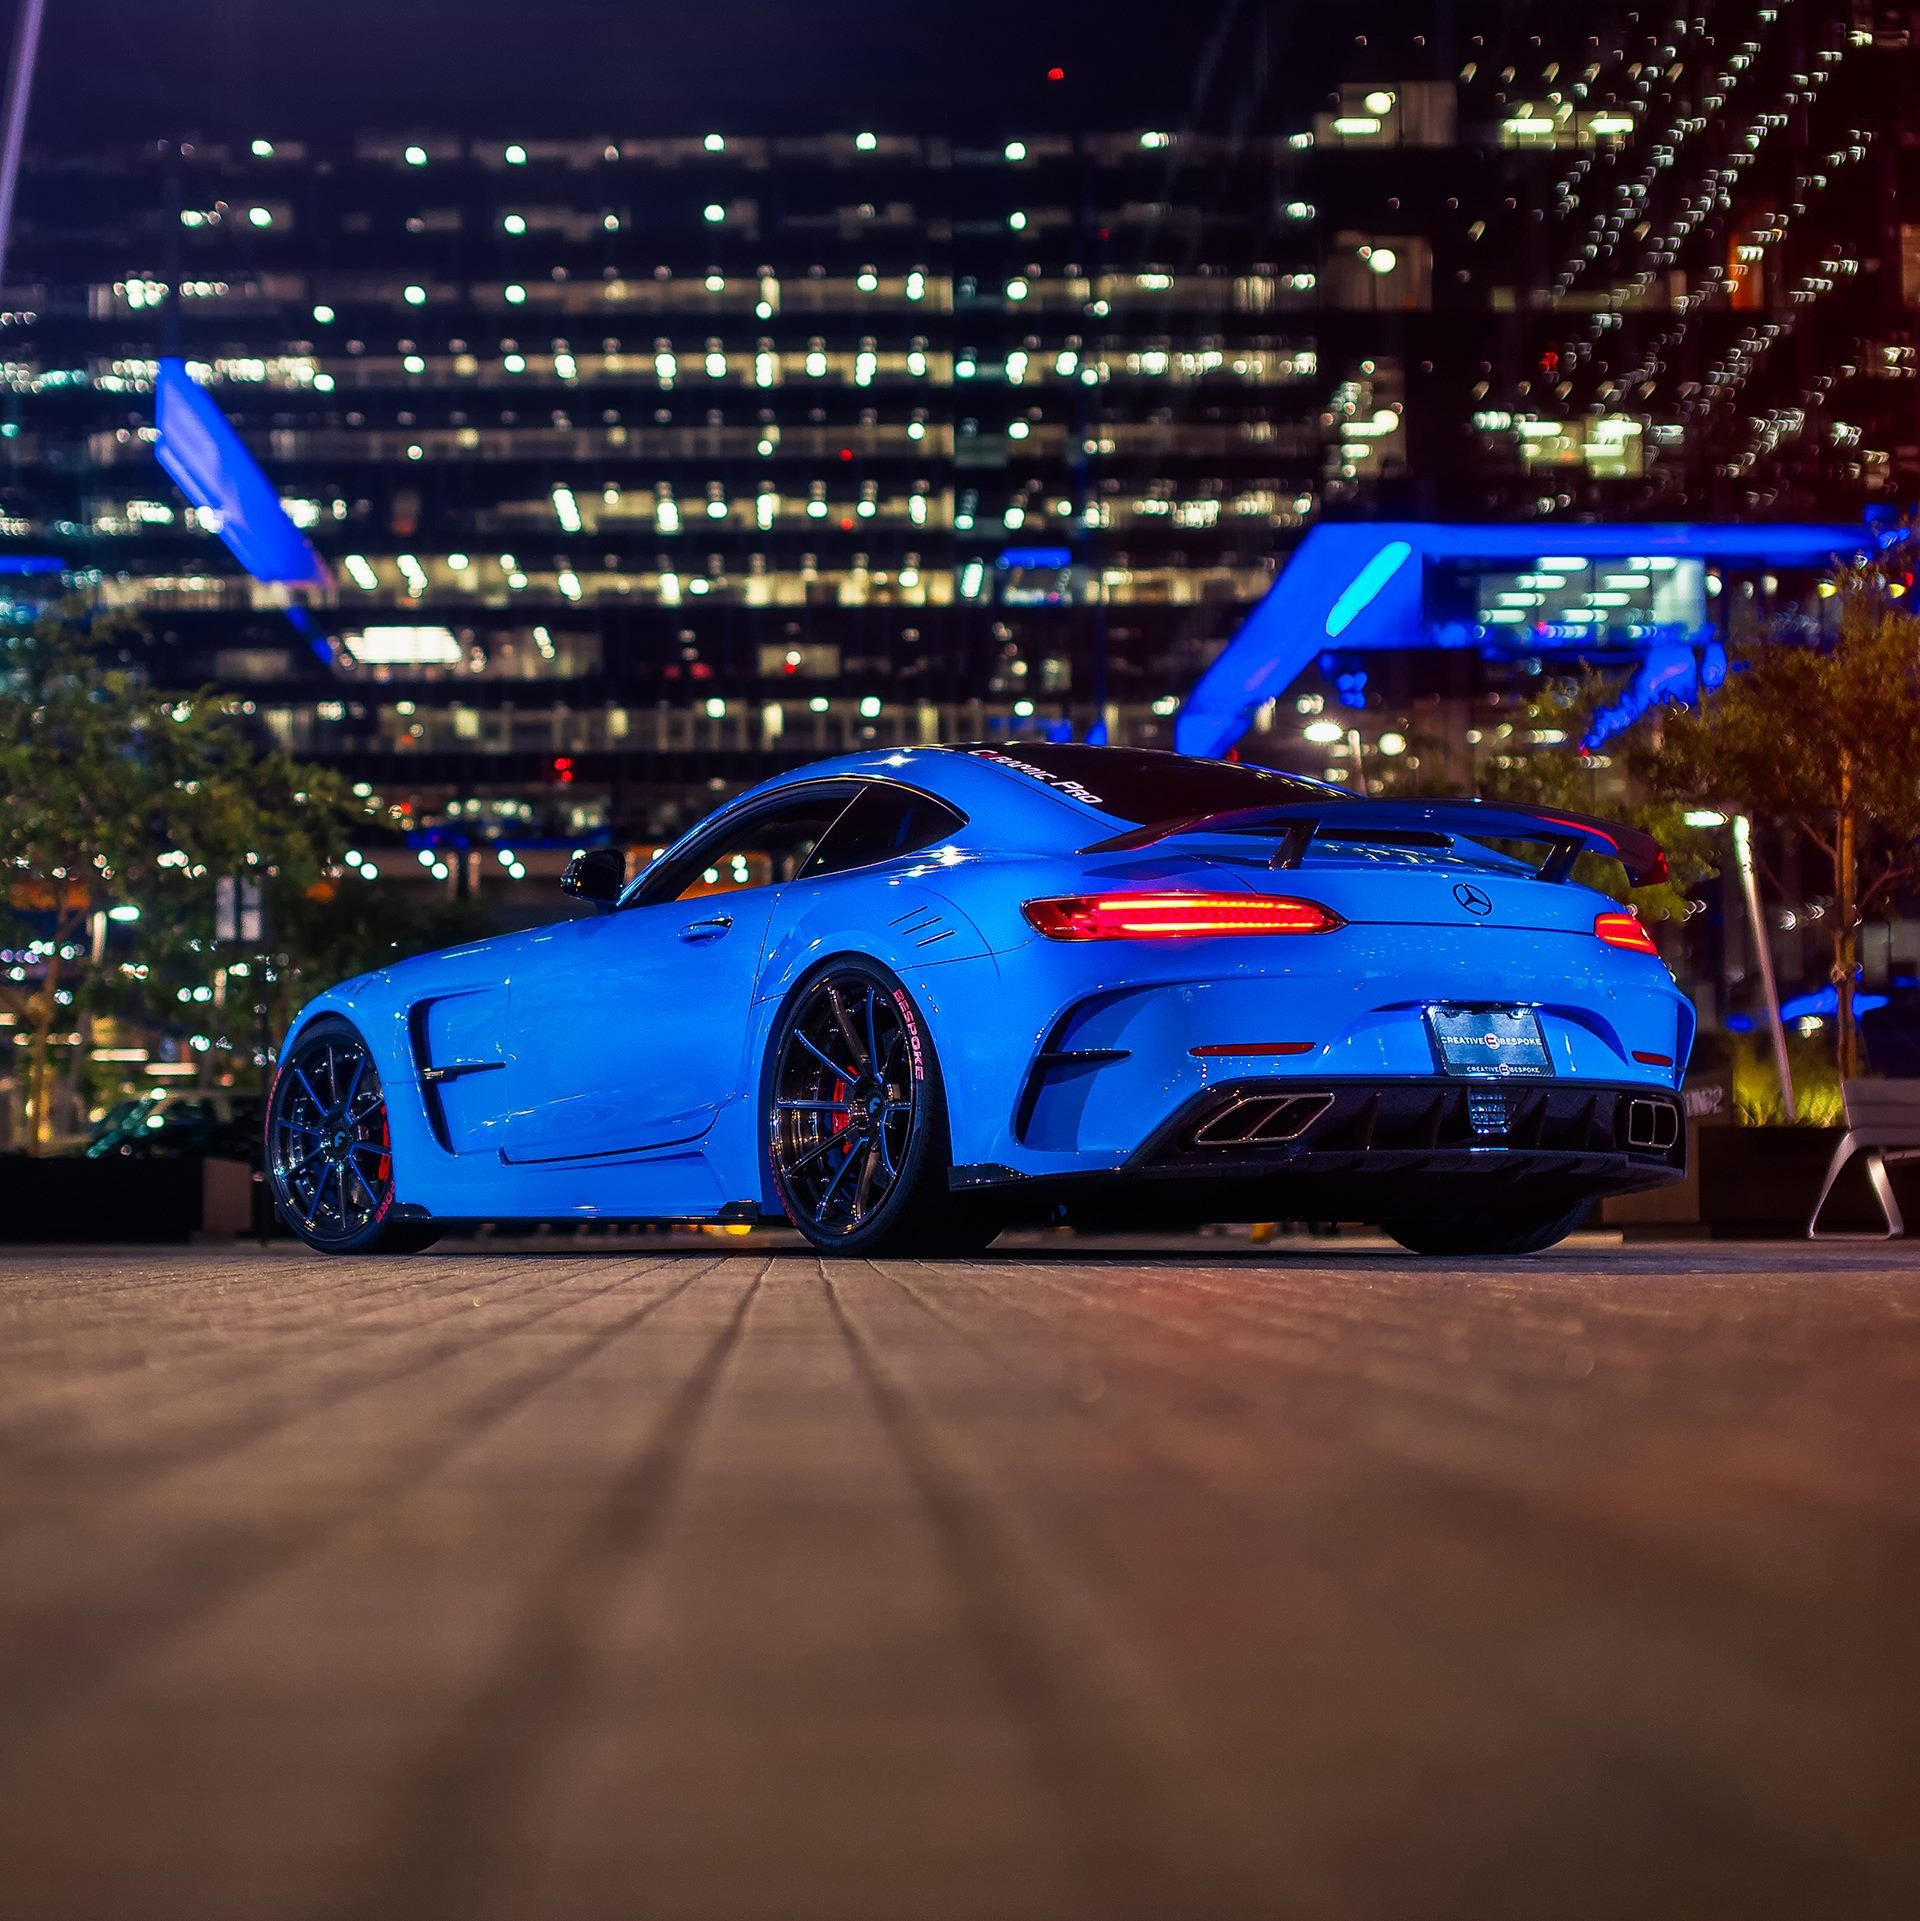 Blue Mercedes Amg Gt With Aftermarket Rear Diffuser Photo By Forgiato